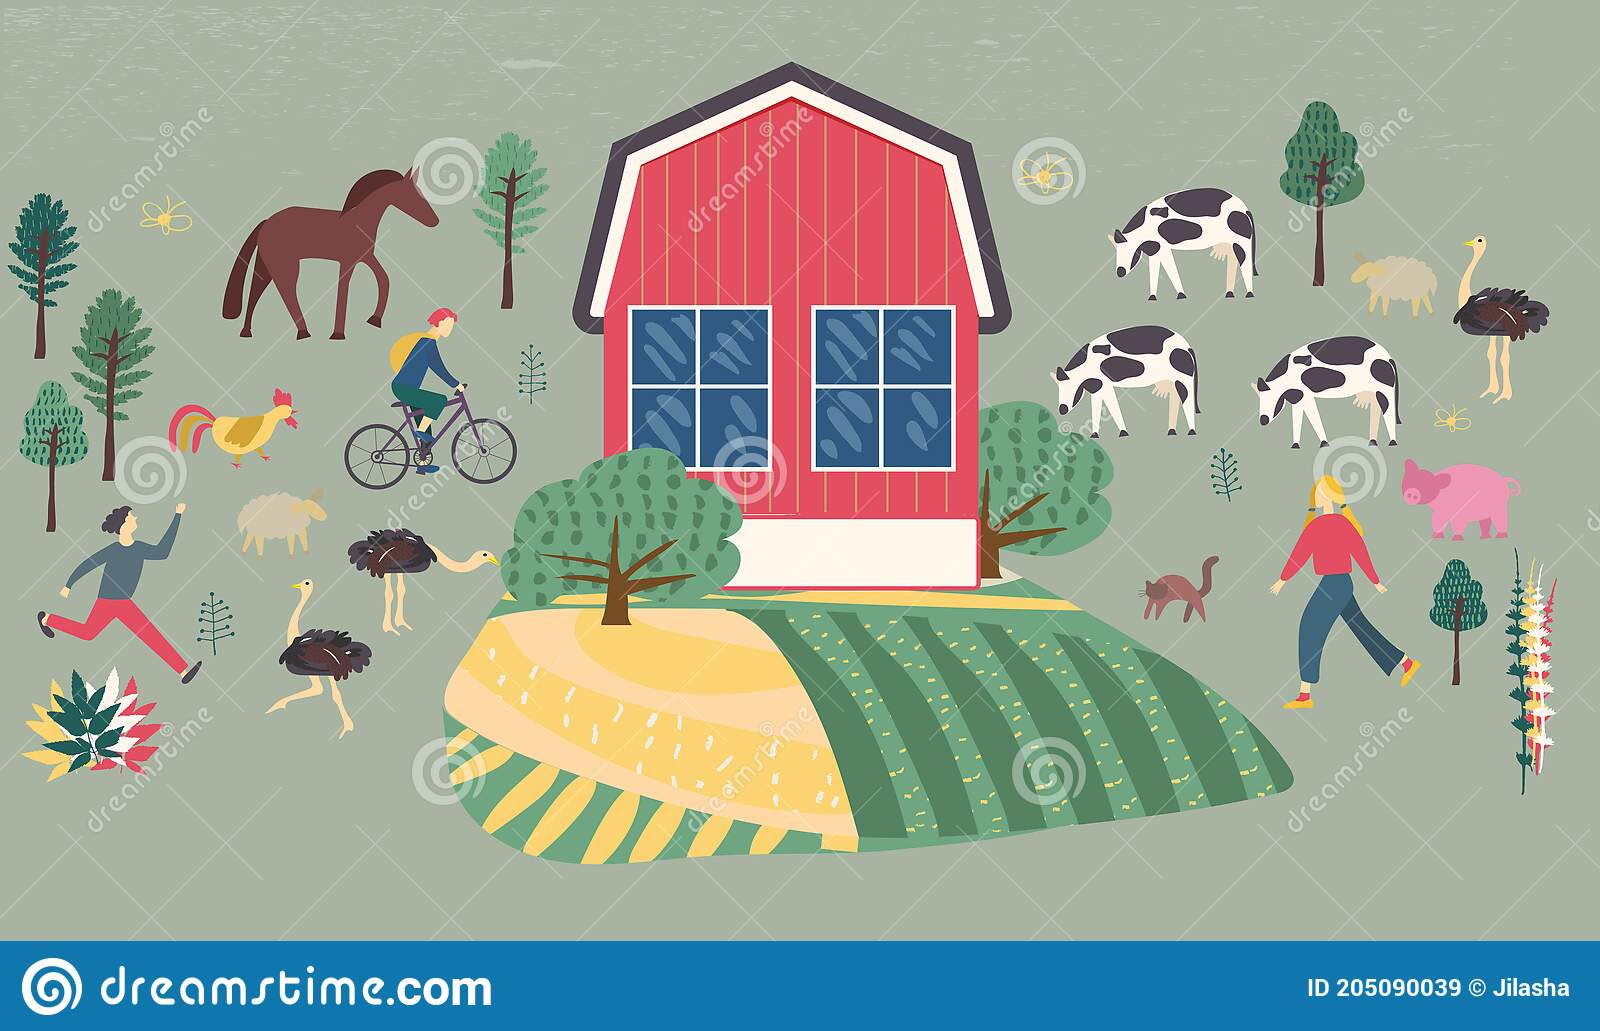 Family Vacations Farm Farmhouse Rural Landscape Animals Cow Pig Sheep Horse Rooster Chicken Hen Ostrich Stock Vector Illustration Of Landscape Countryside 205090039